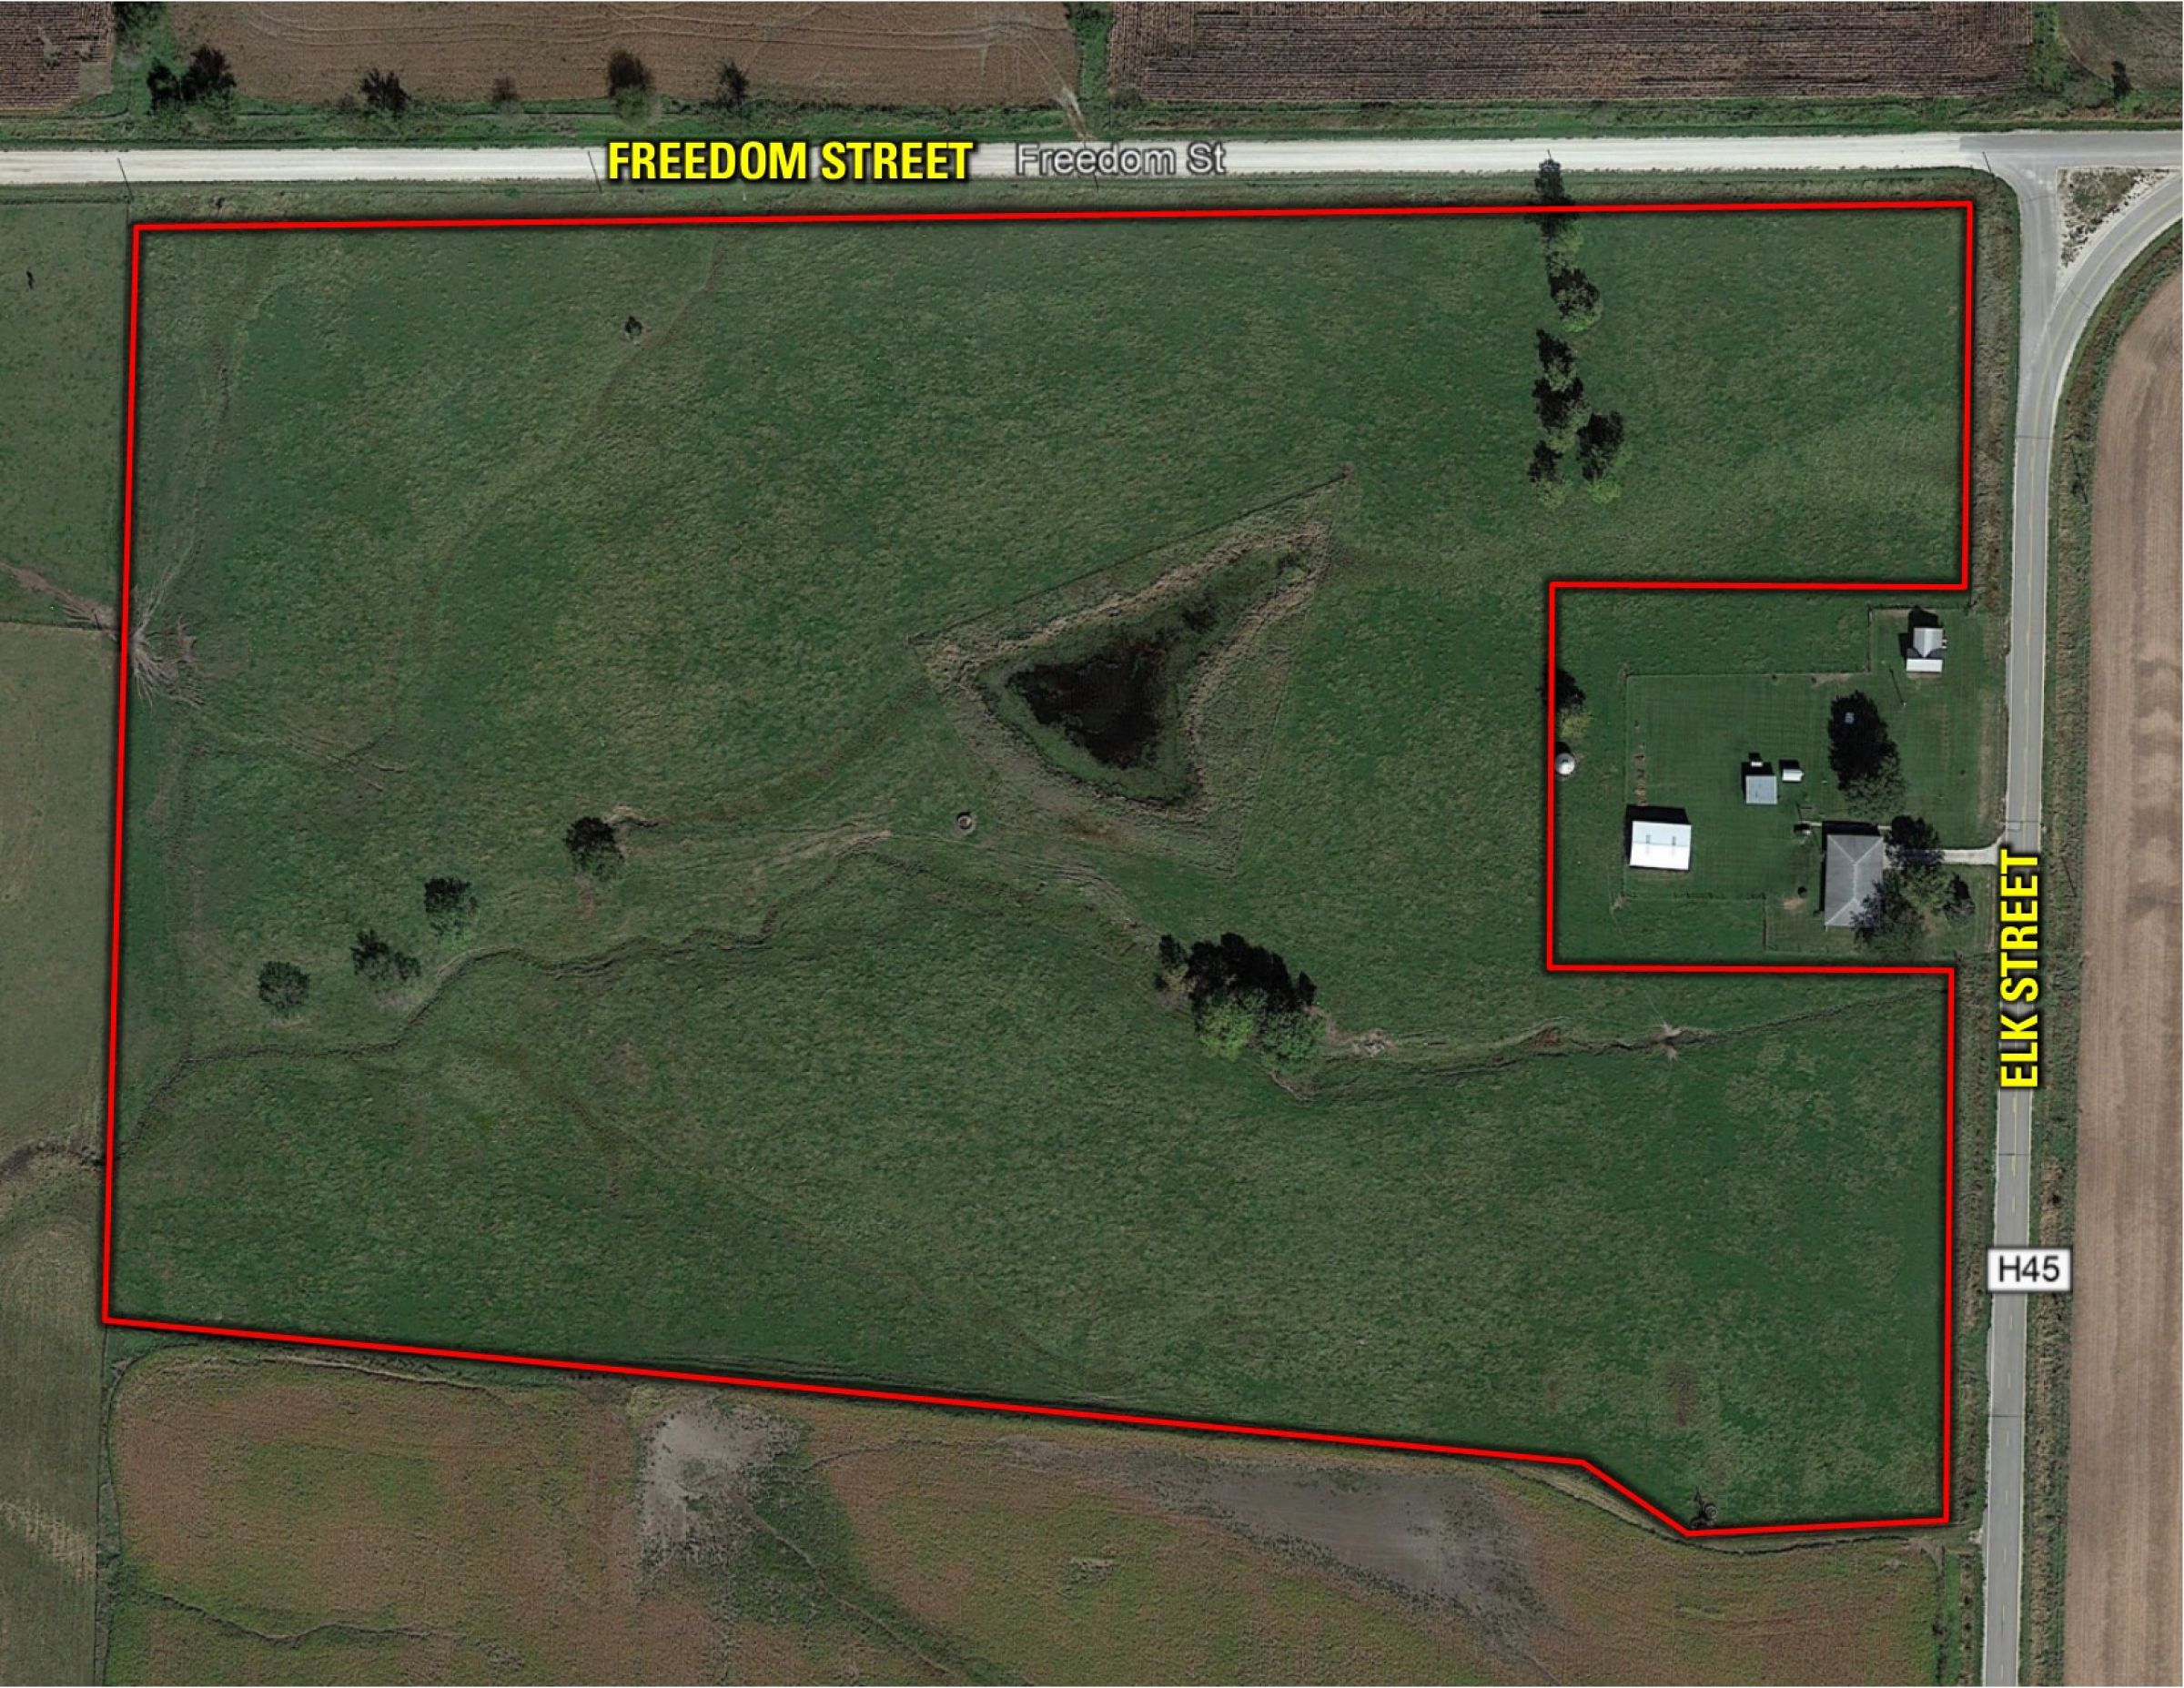 PeoplesCompany-Farmland Auction in Clarke County IA-Elk Street Osceola